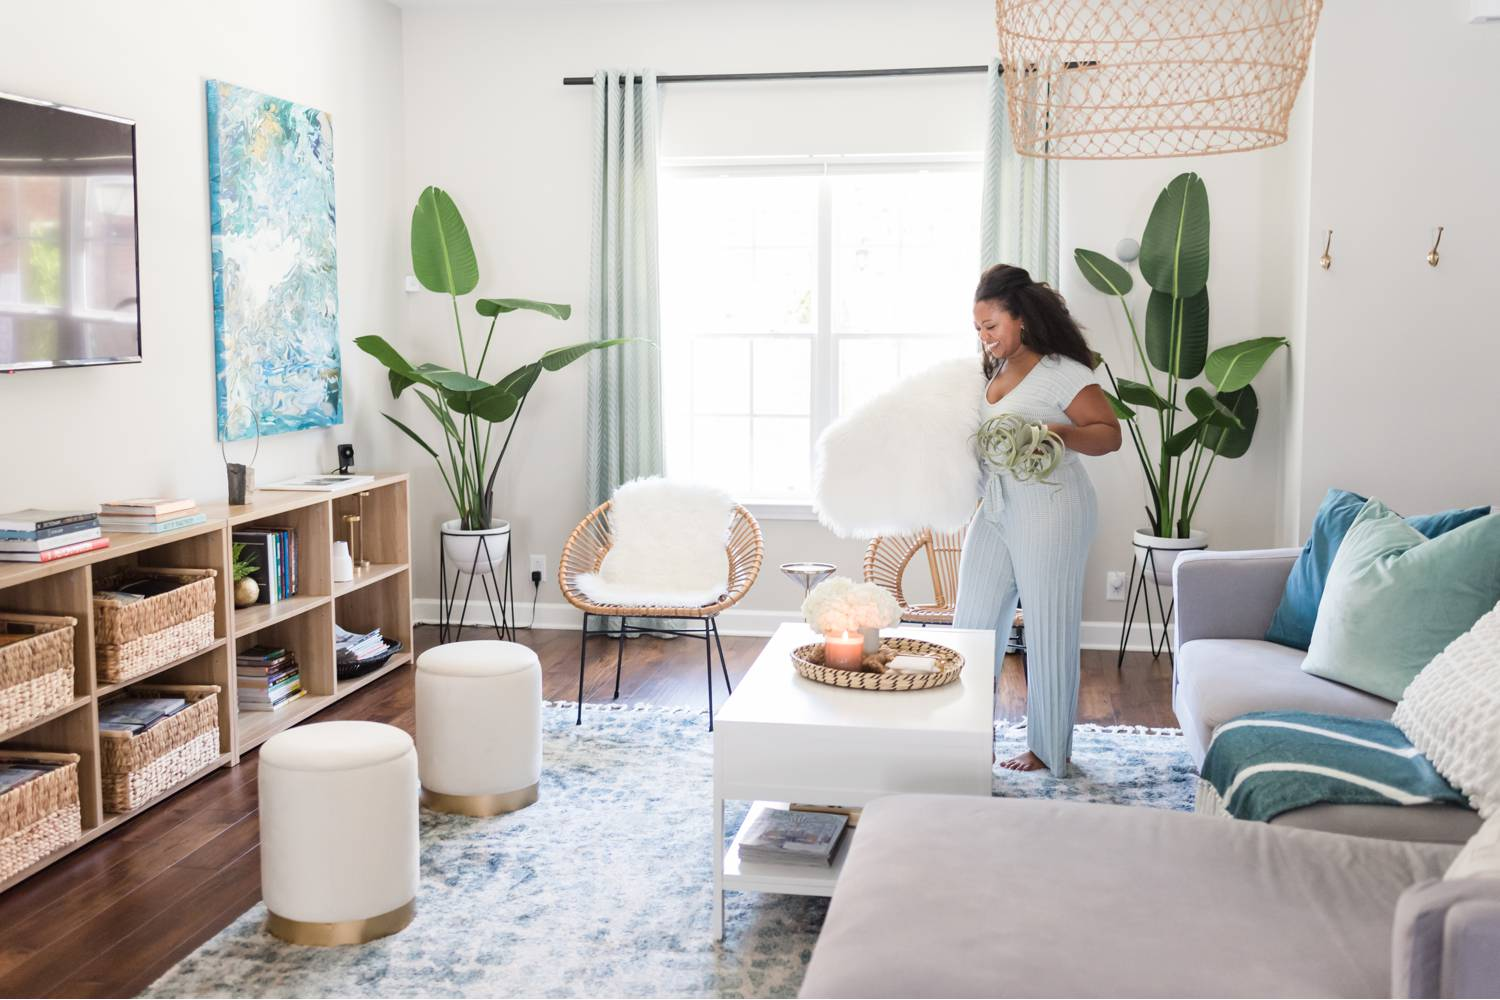 By Mandy Liz: An interior designer places decor in a brightly lit room while considering the phenomenal client feedback she'll certainly receive.